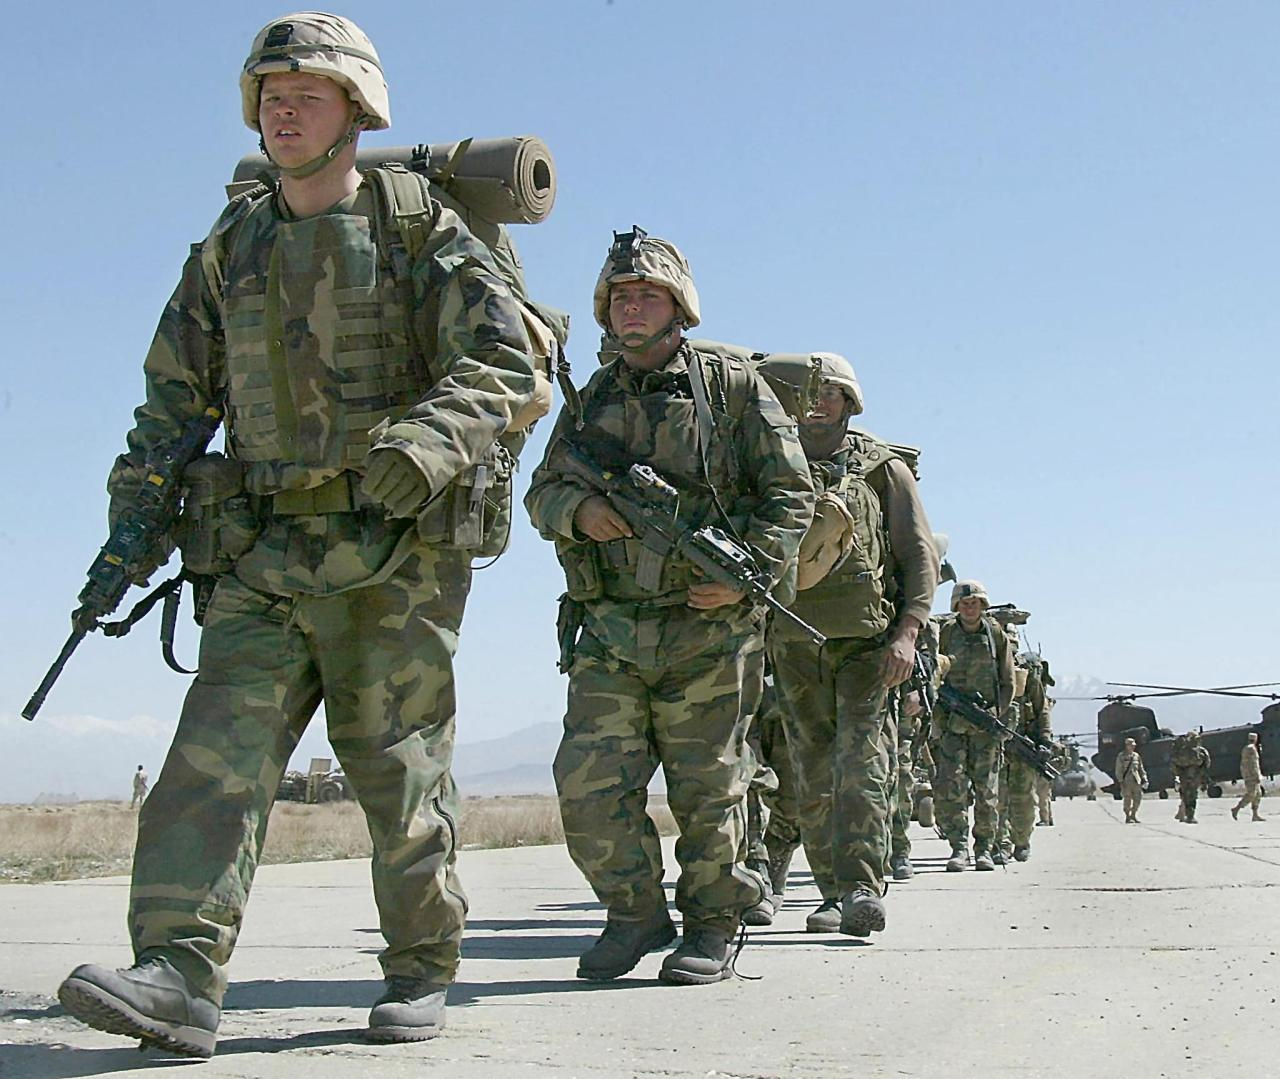 In this file photo taken on March 12, 2002, US soldiers arrive at Bagram Air Base, in Bagram. (AFP)